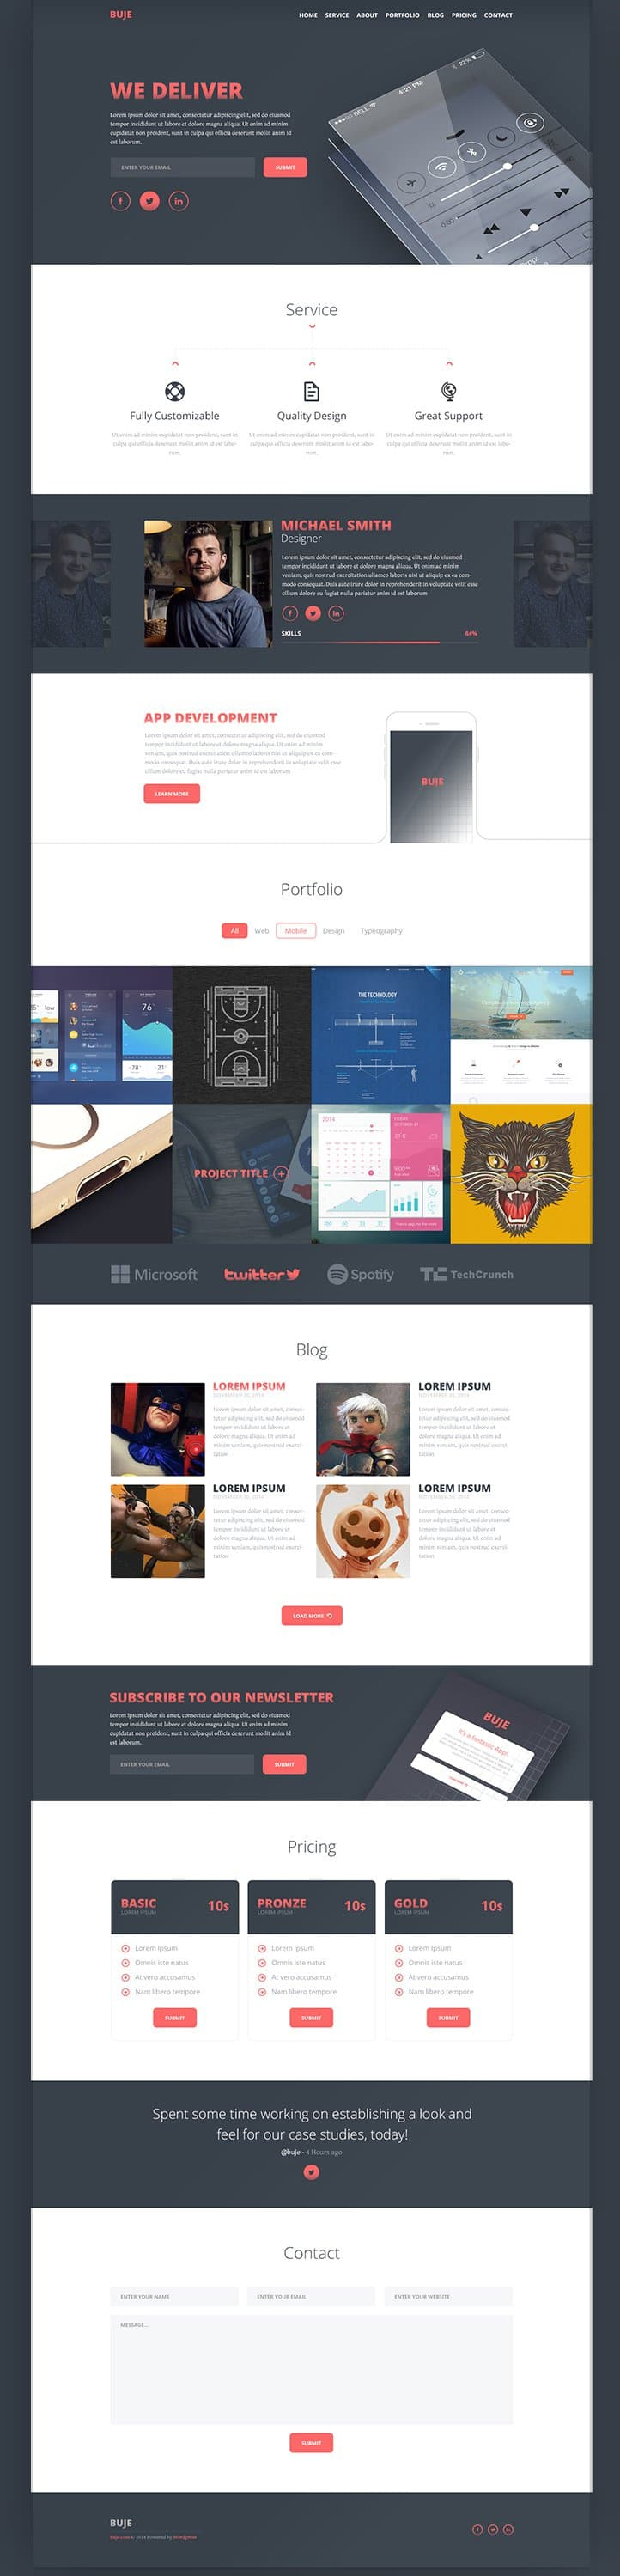 Buje – One Page Template PSD